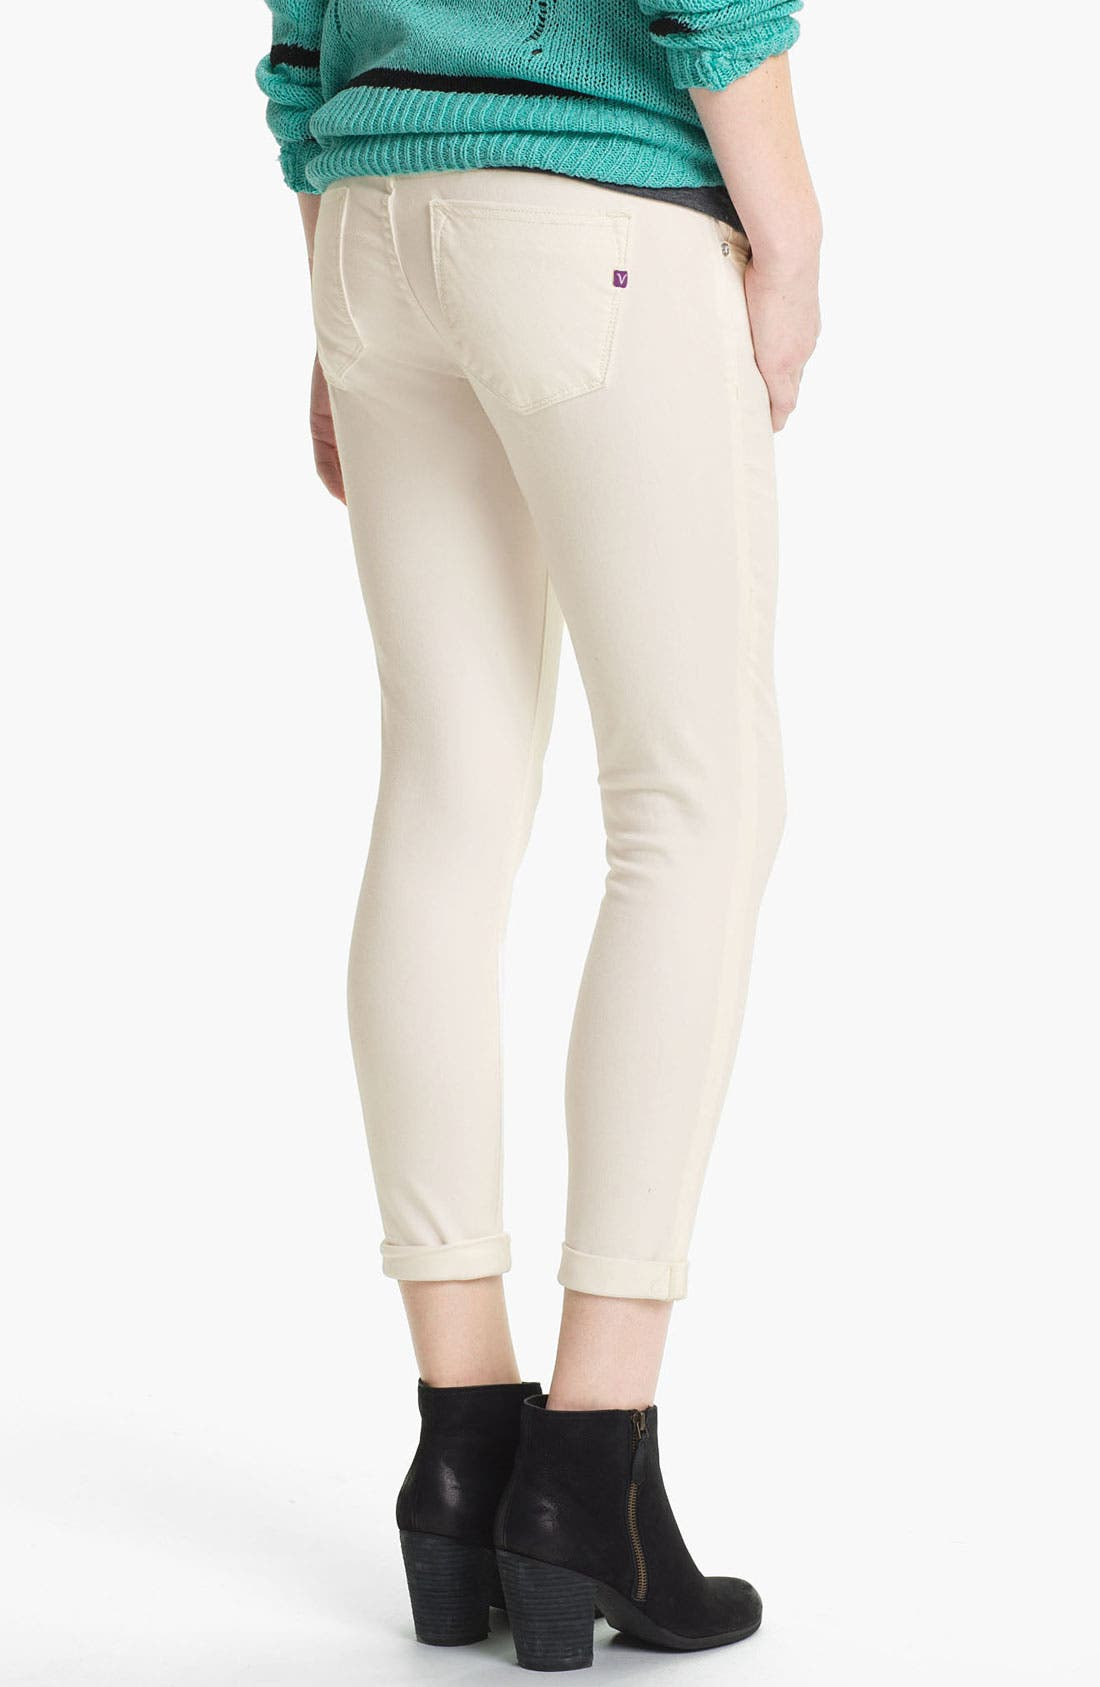 Alternate Image 1 Selected - Vigoss Skinny Crop Jeans (White) (Juniors)